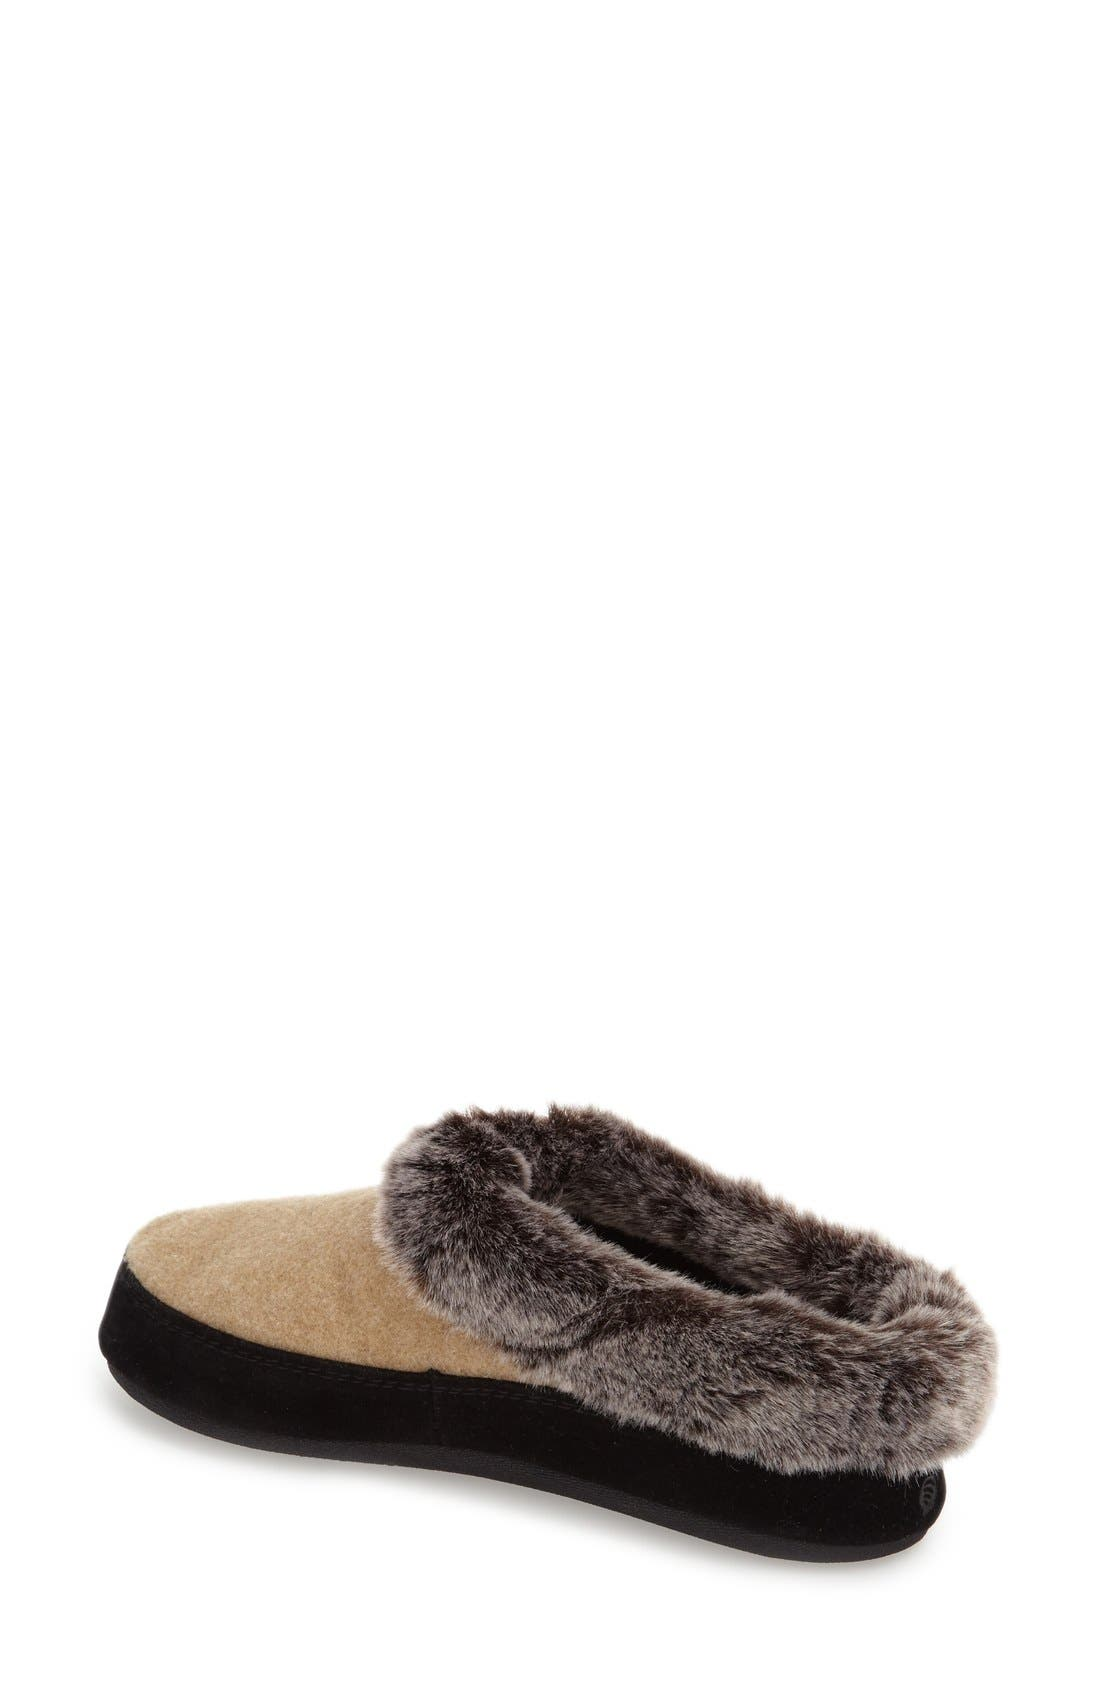 'Cloud Chilla Scuff' Slipper,                             Alternate thumbnail 7, color,